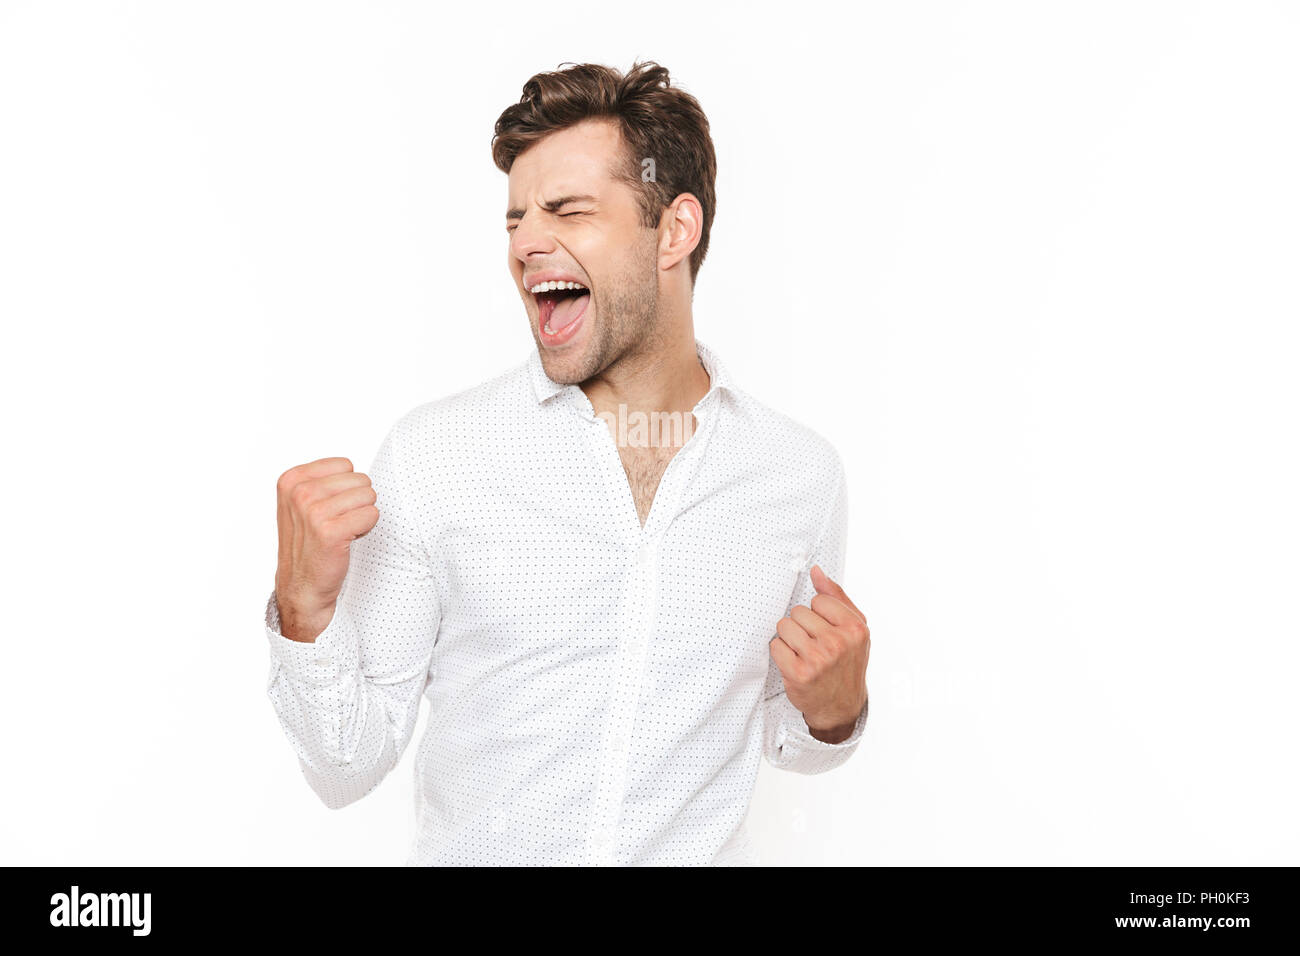 Photo of happy man 30s rejoicing and clenching fists isolated over white background - Stock Image